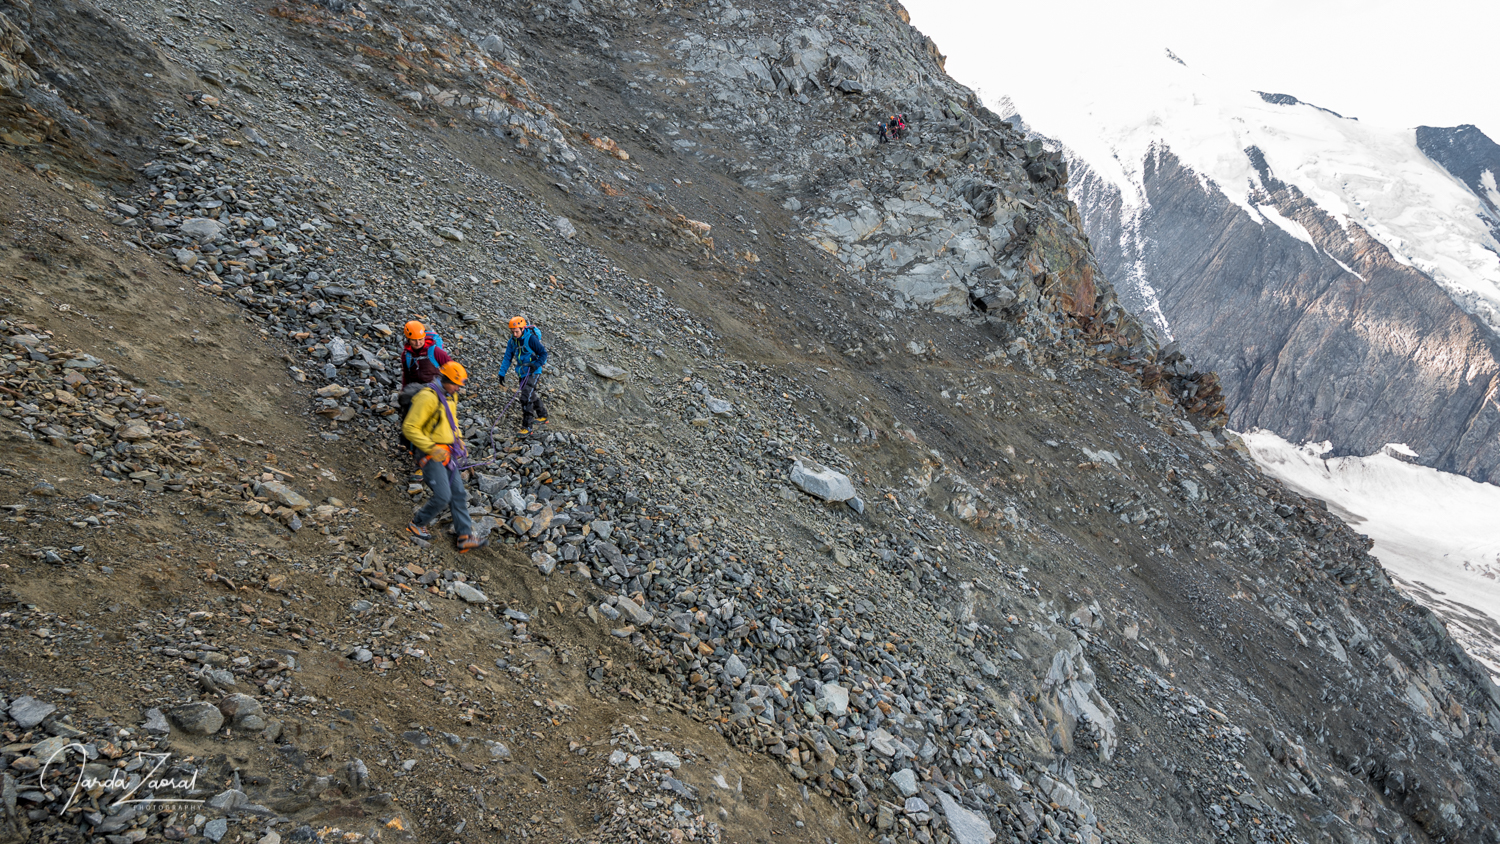 Grand Couloir (Mont Blanc) on the way to Gouter Hut